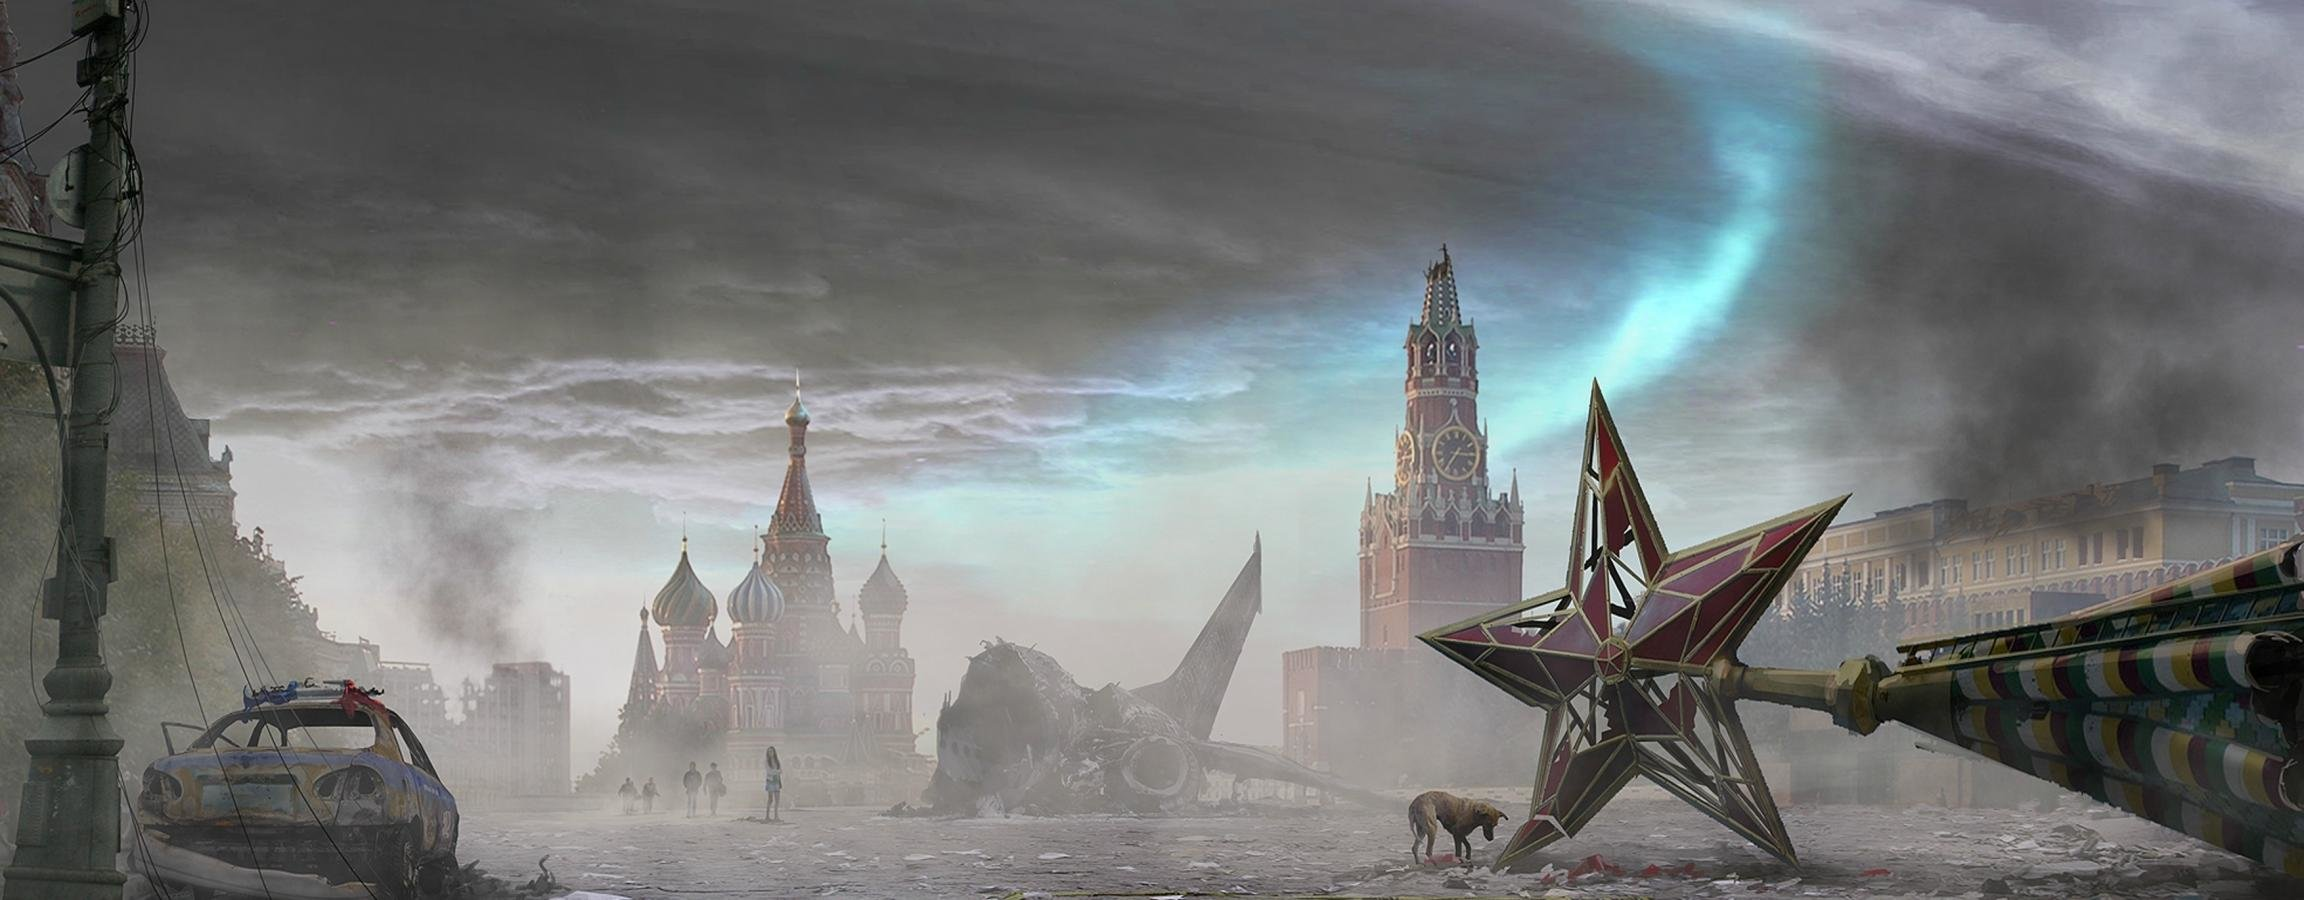 Best Post Apocalyptic wallpaper ID:325186 for High Resolution dual screen 2304x900 desktop